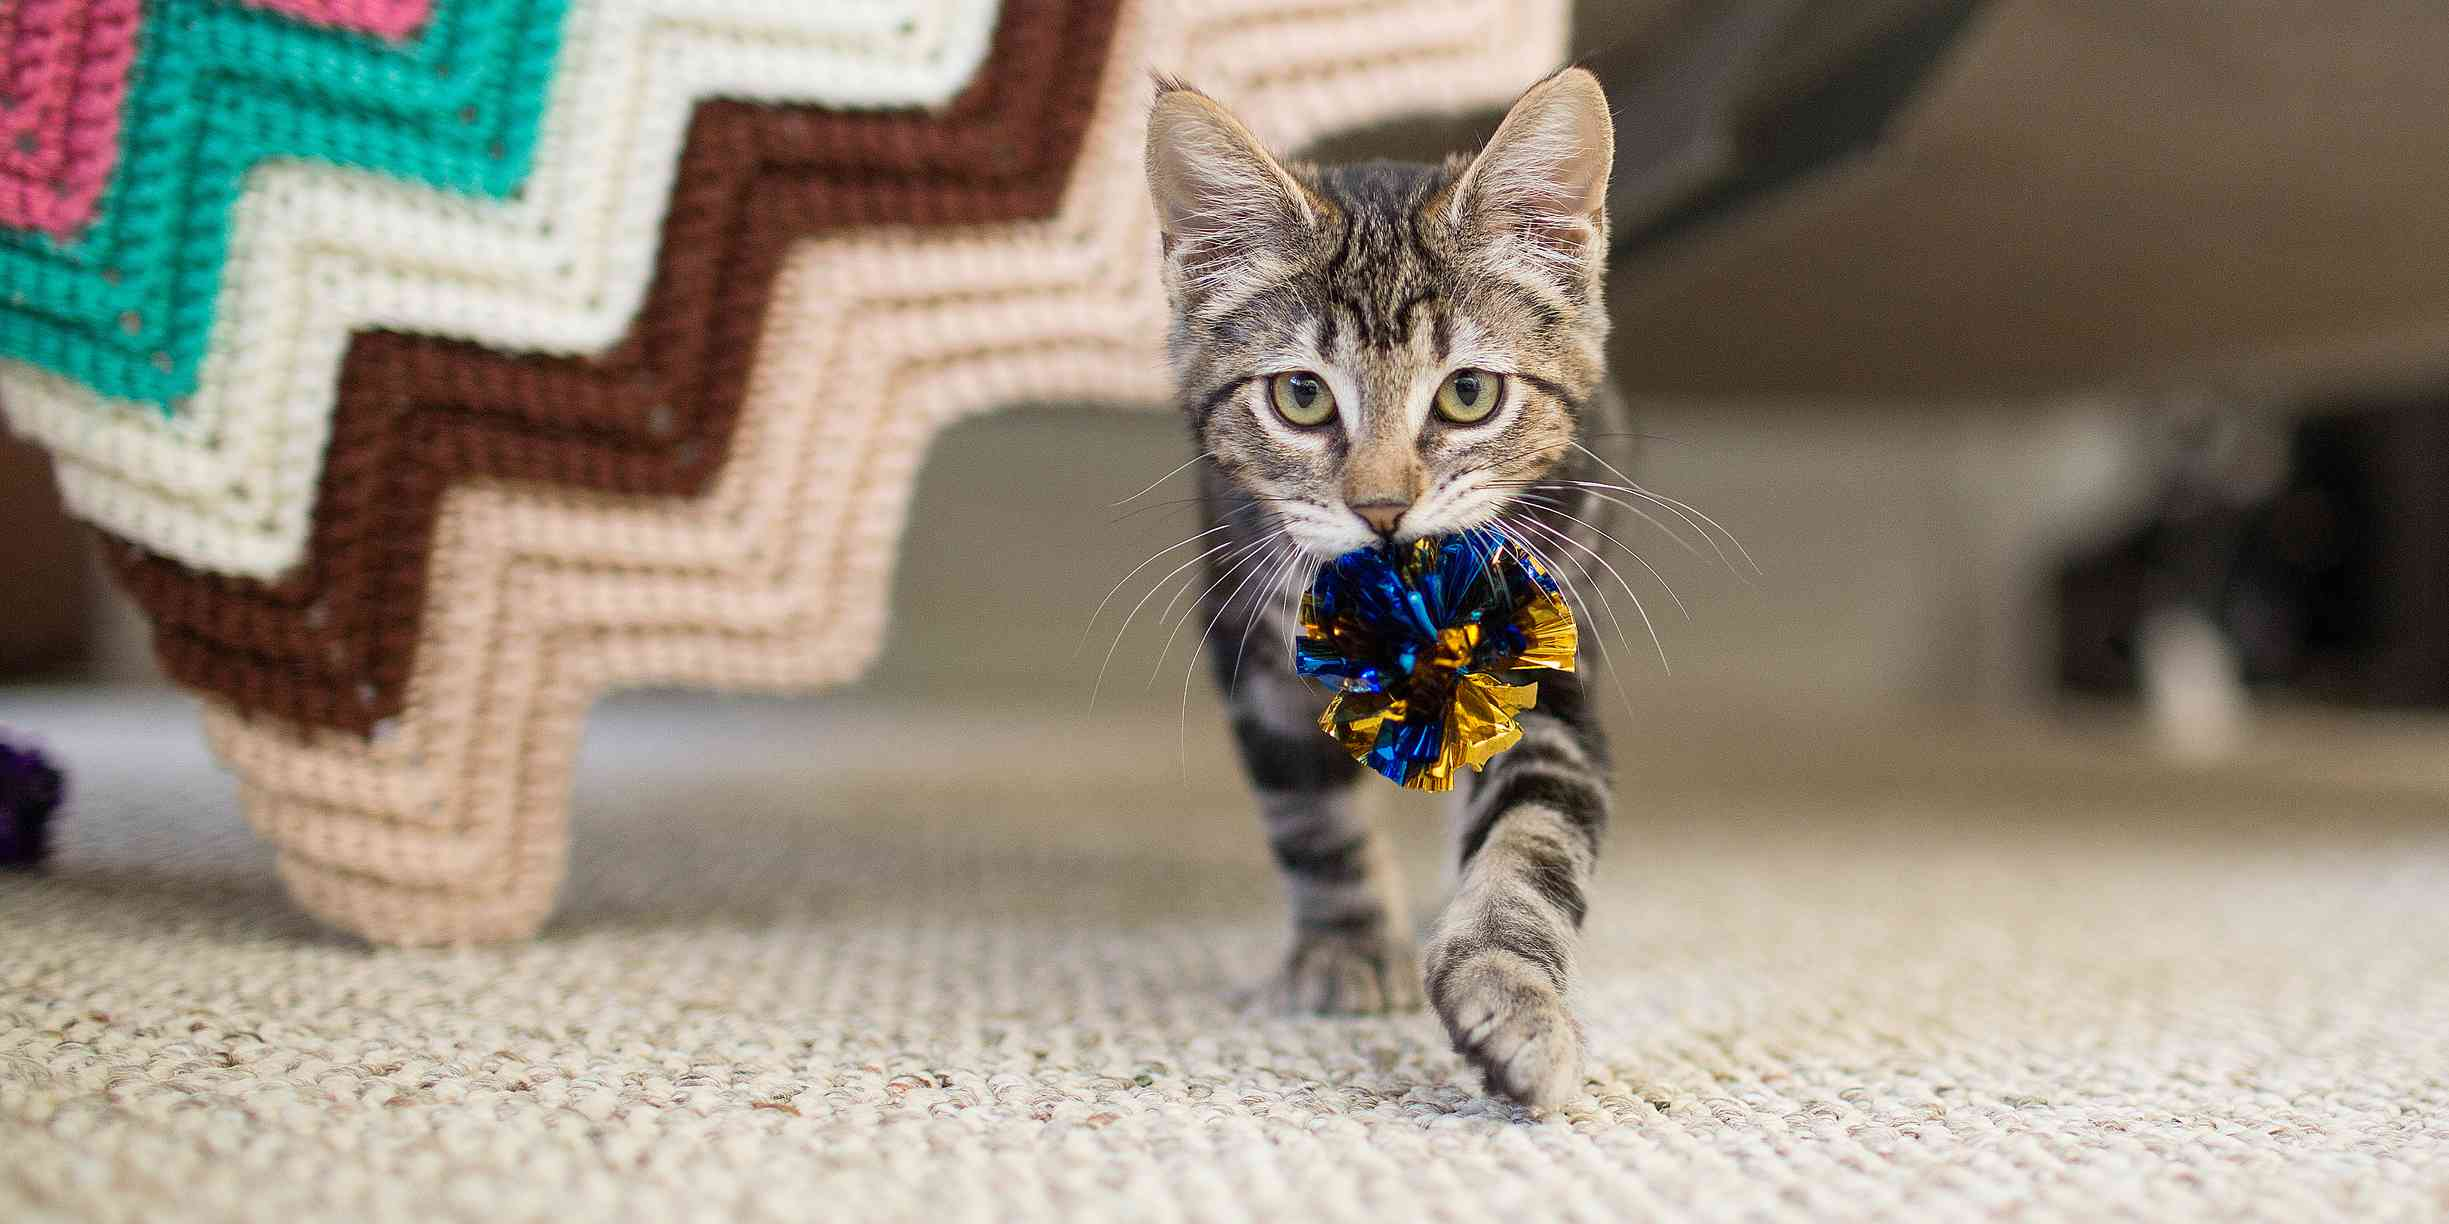 Tabby cat carrying a toy.